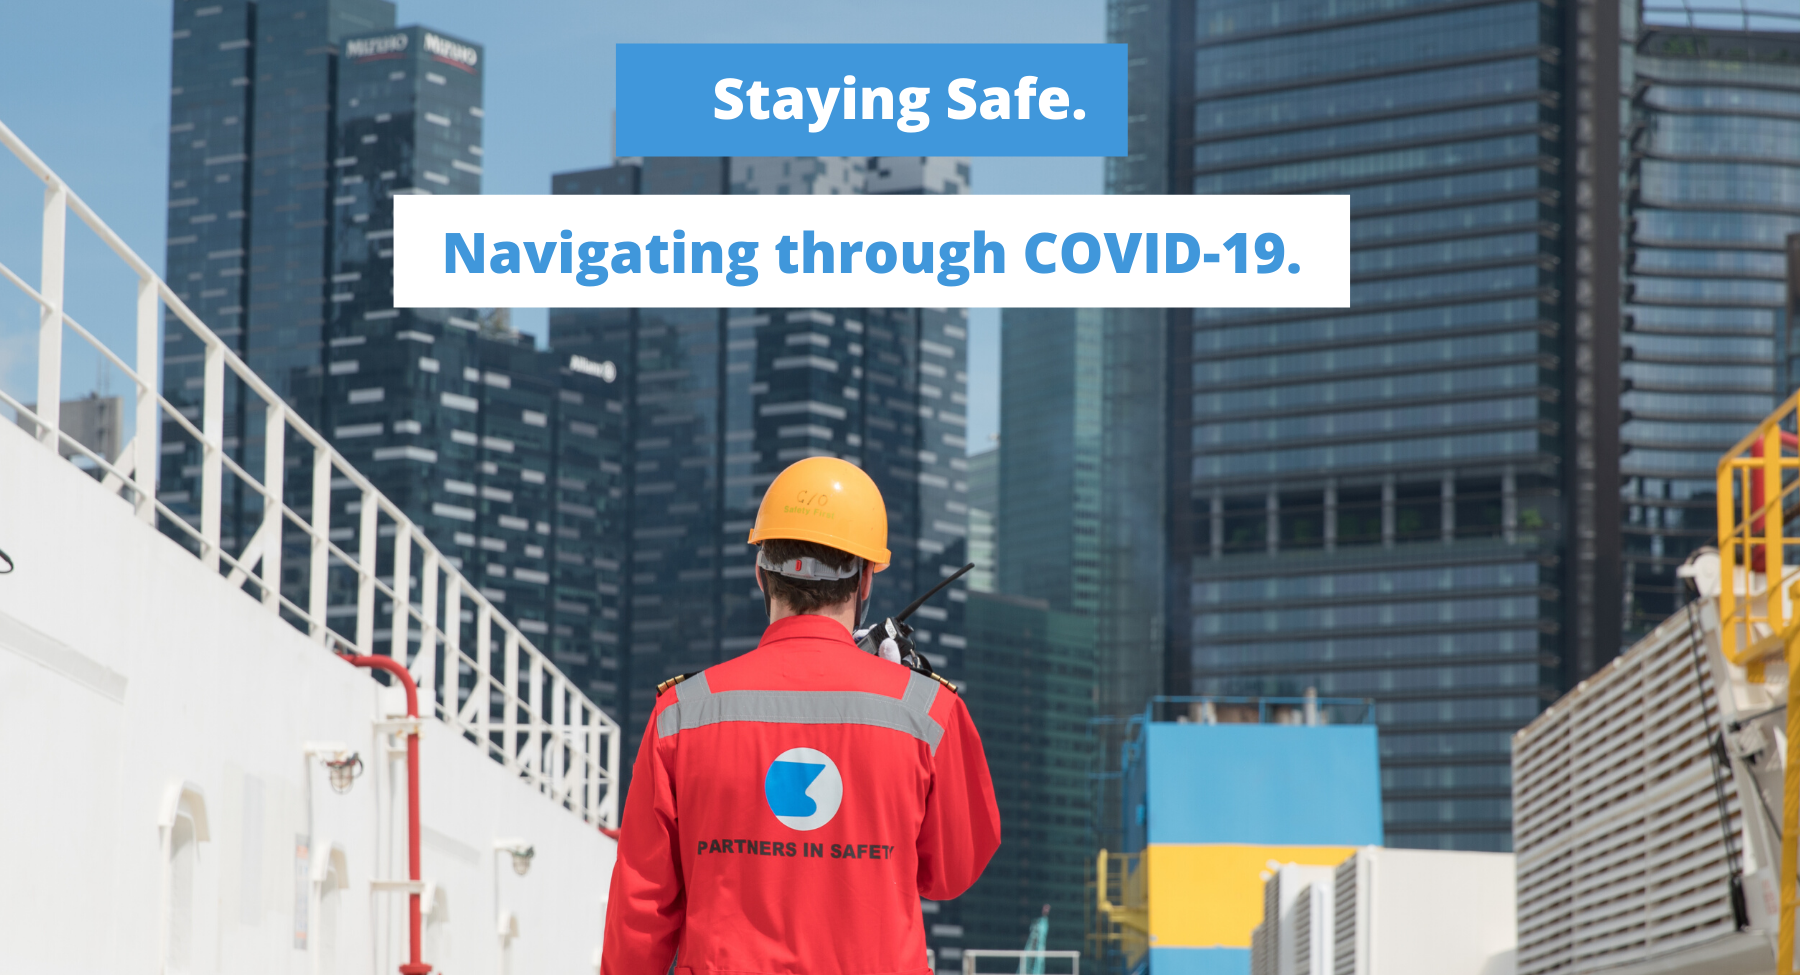 Staying Safe: How EPS is navigating through COVID-19